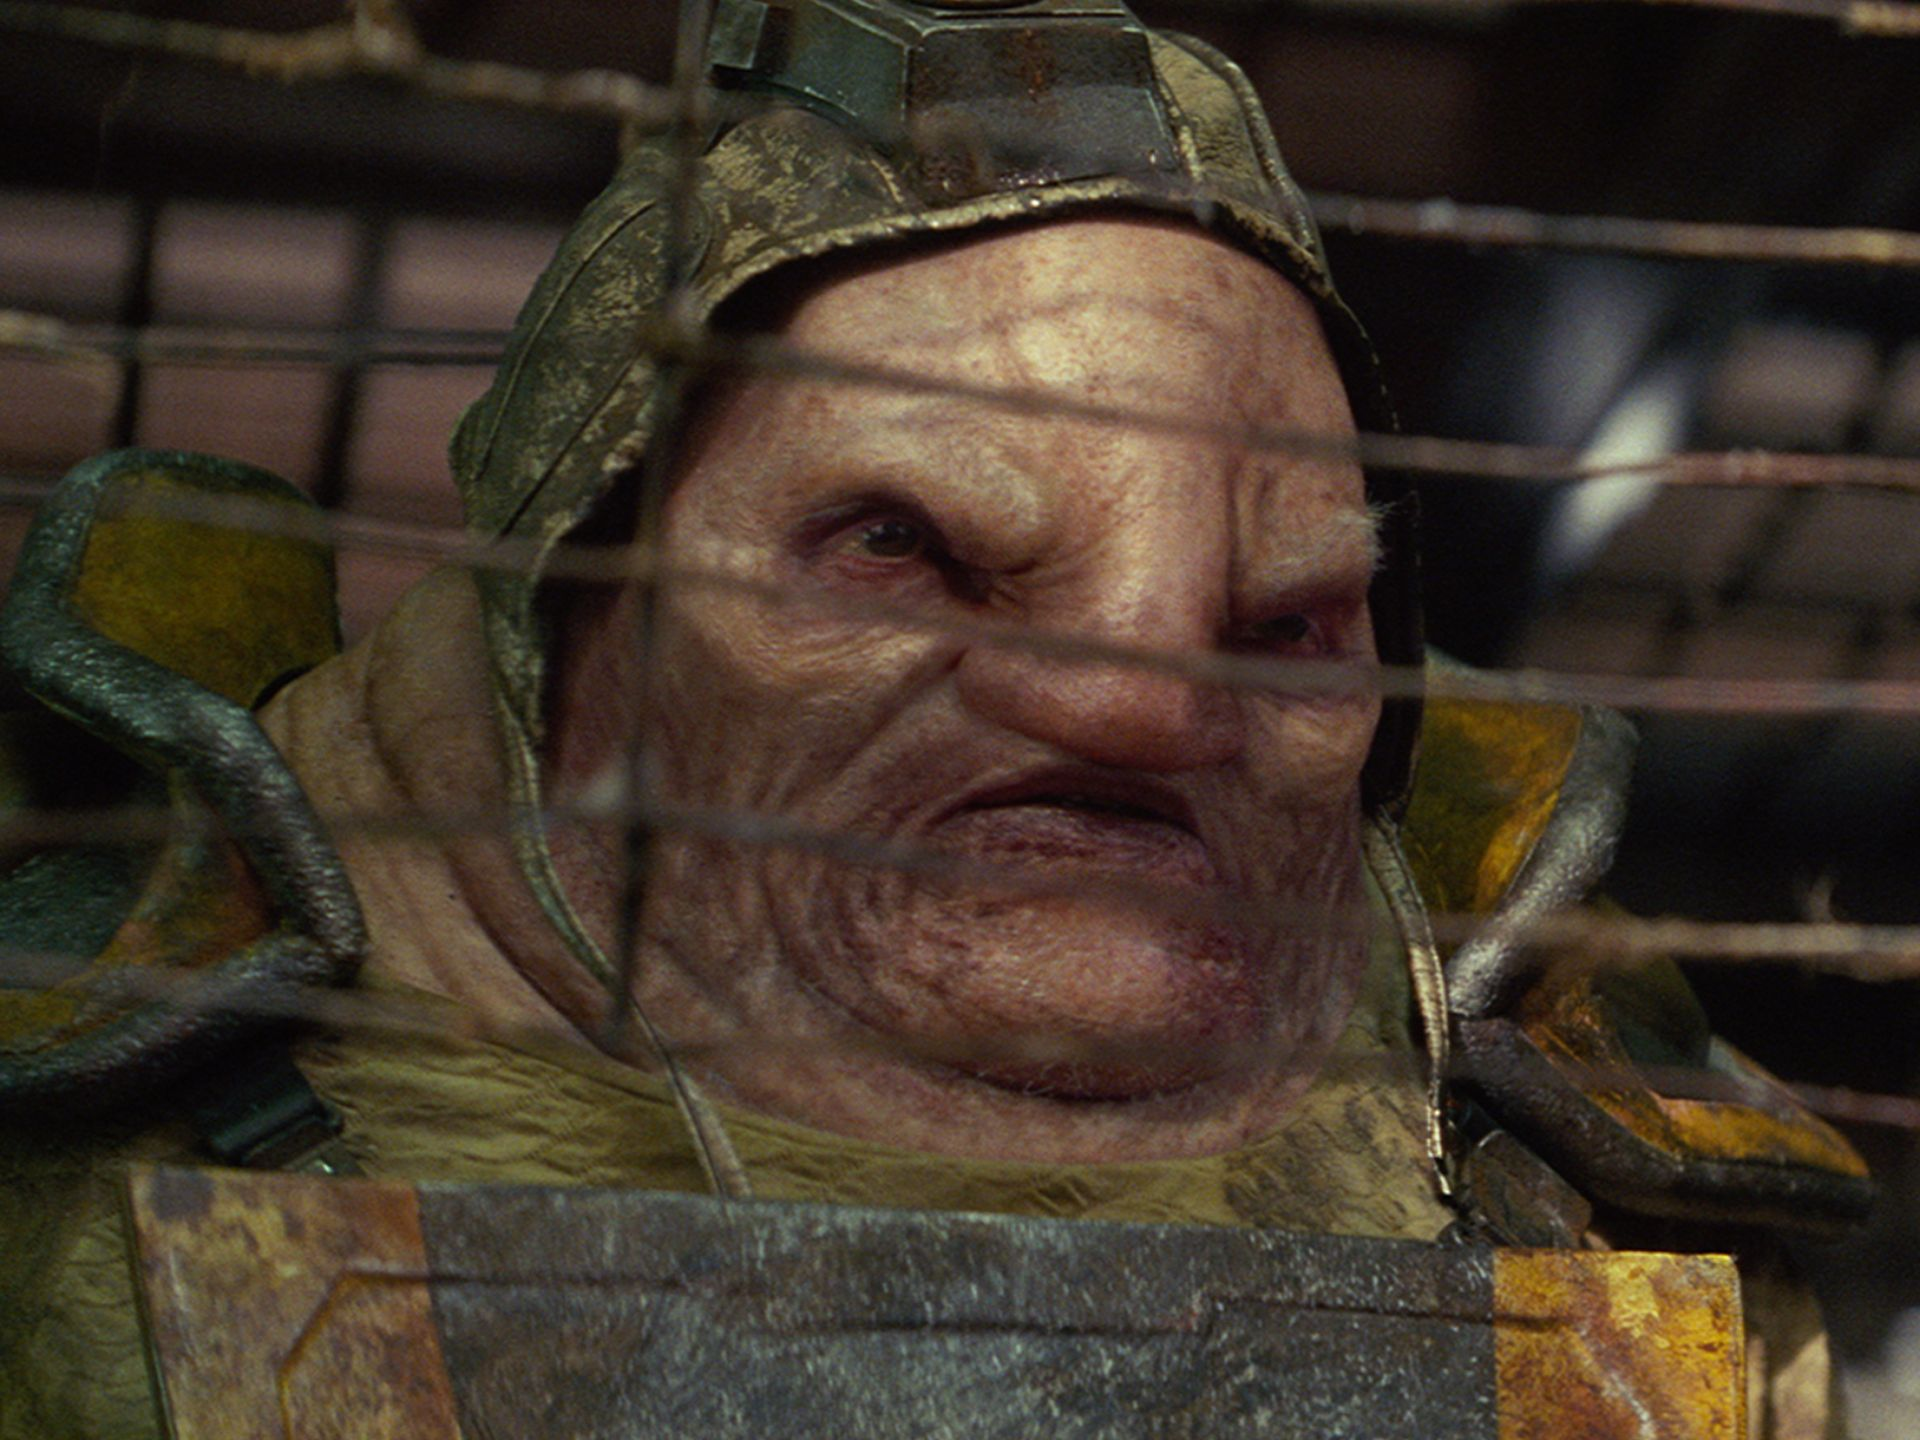 Unkar plutt villains wiki fandom powered by wikia